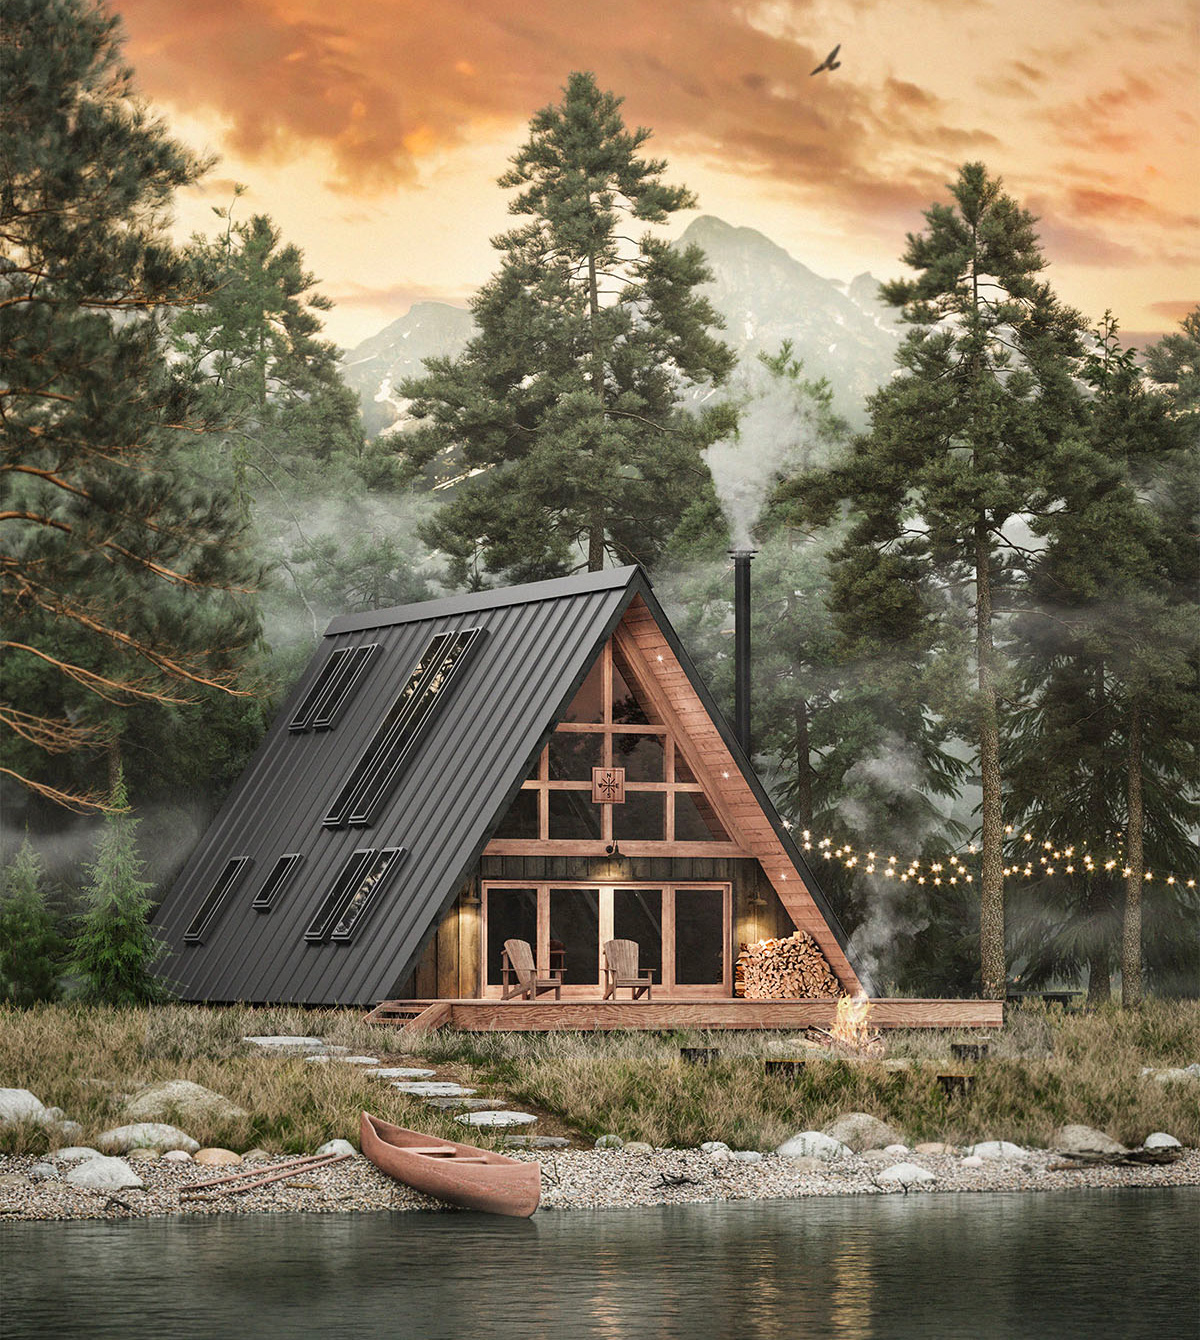 With AYFRAYM You Can Build Your Dream Getaway Cabin at werd.com